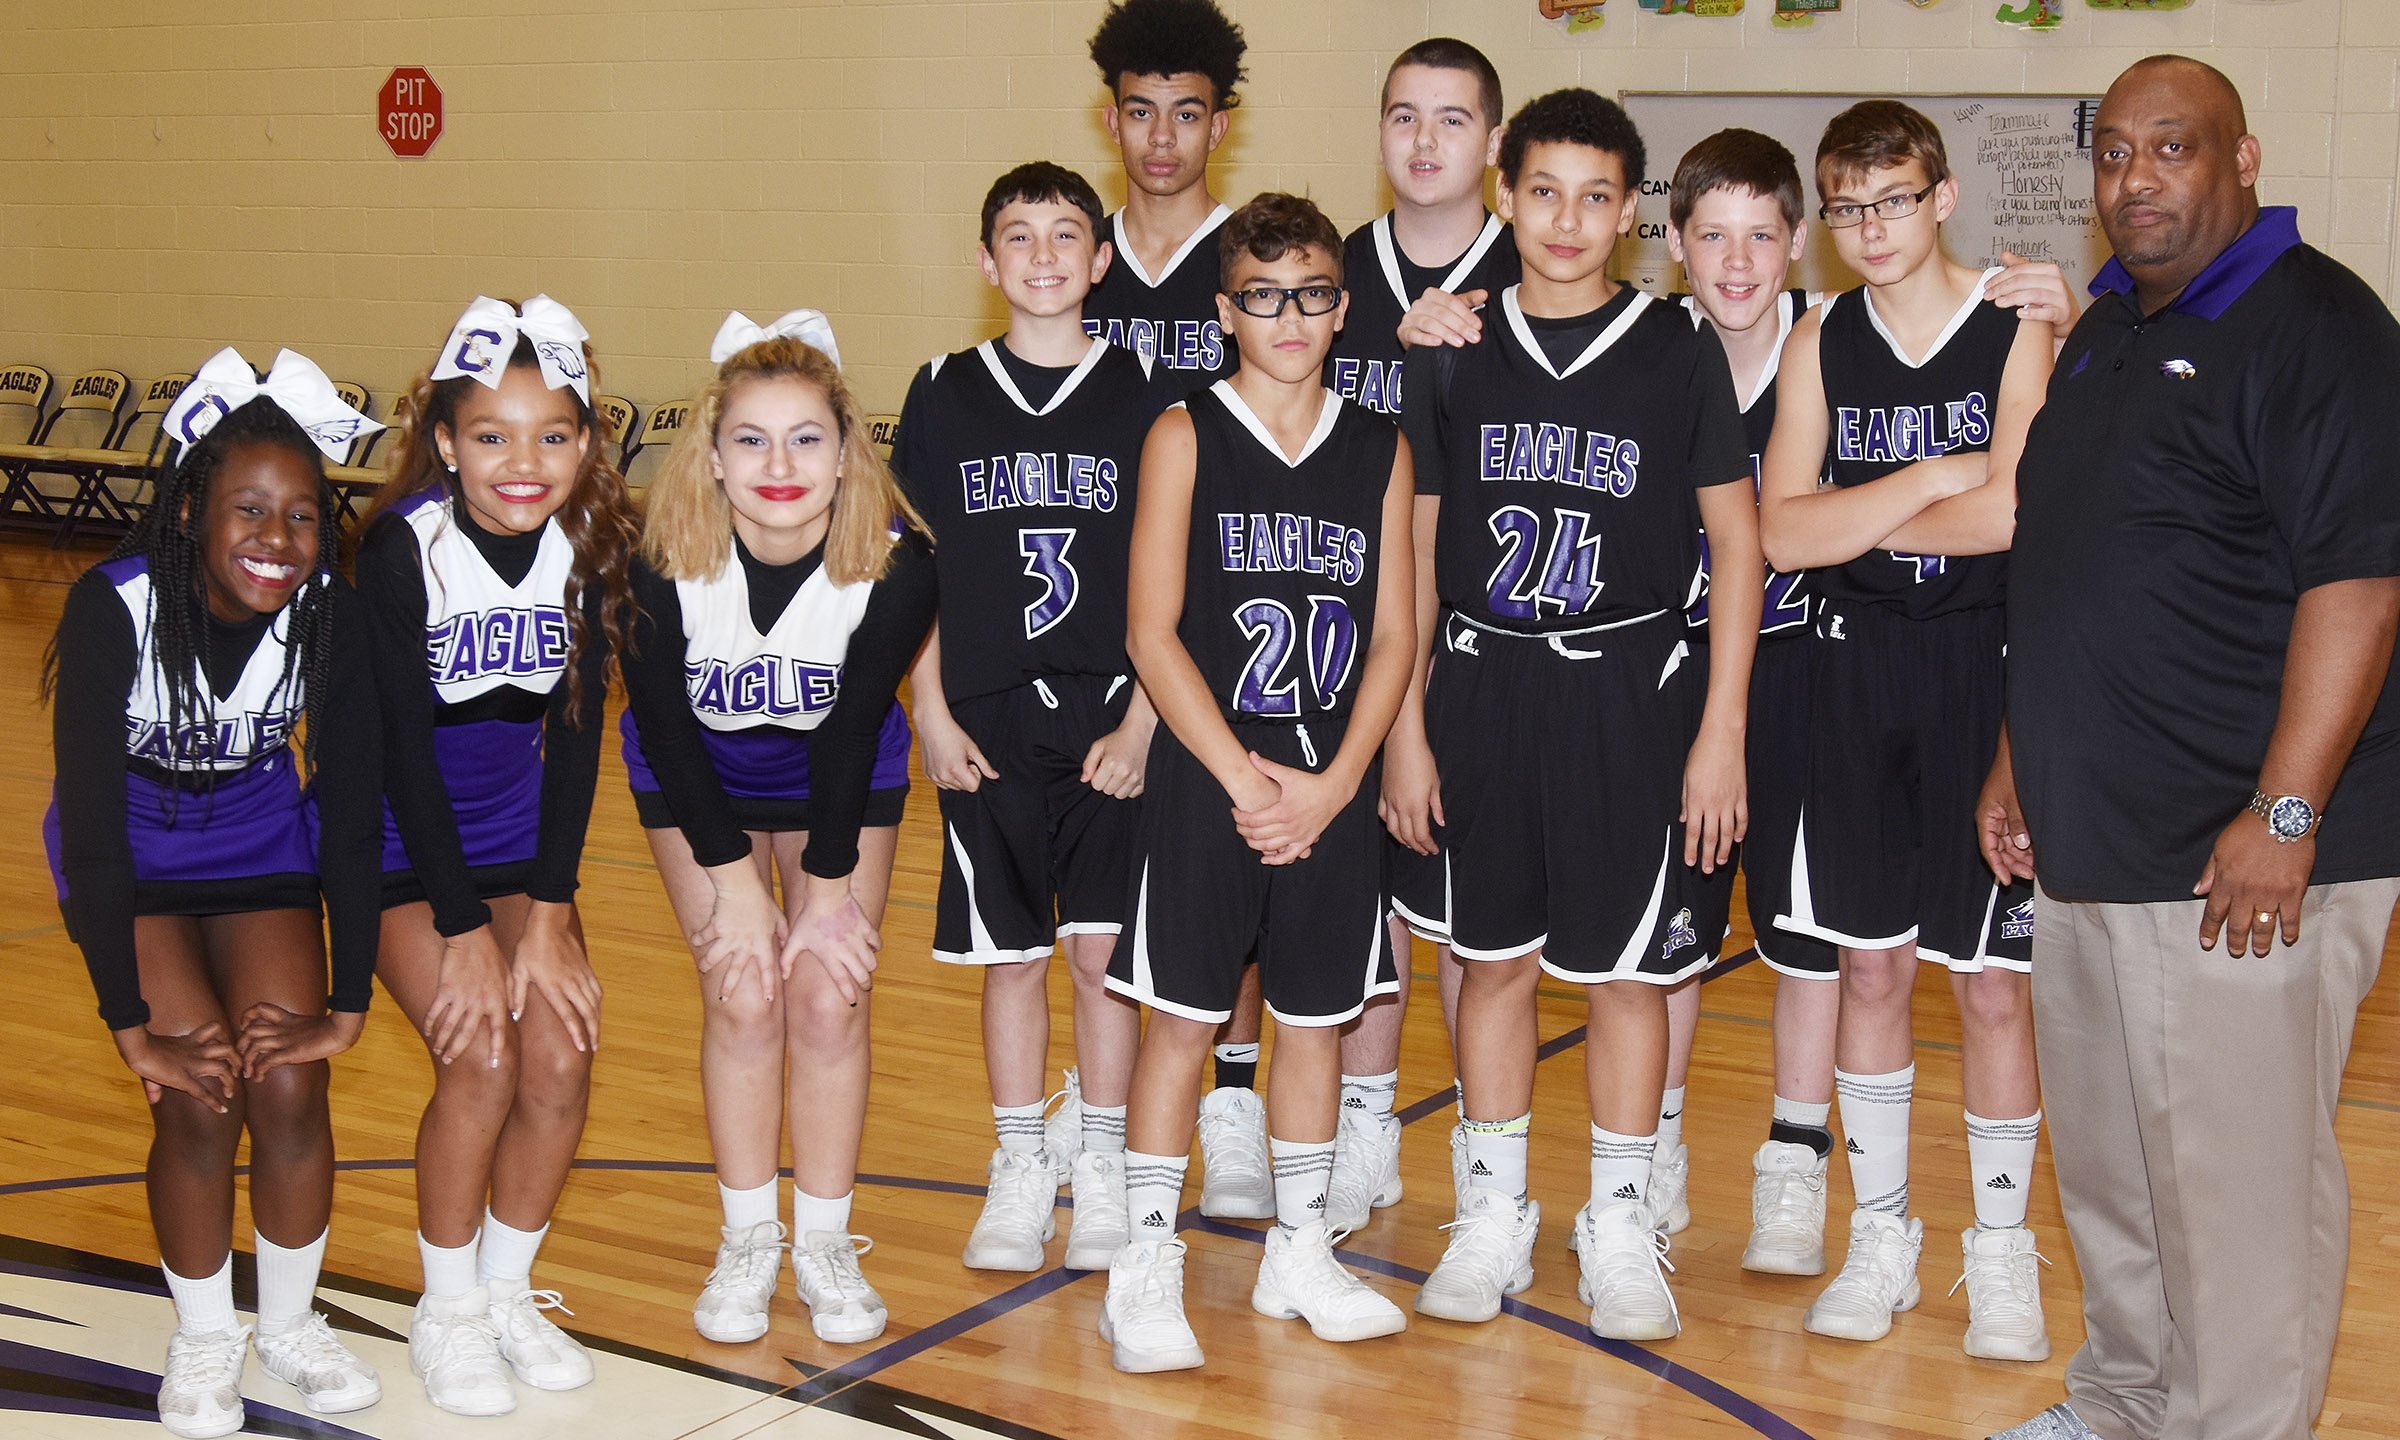 Campbellsville Middle School eighth-grade boys' basketball players and cheerleaders were honored on Thursday, Jan. 4. From left are cheerleaders Myricle Gholston, Alexis Thomas and Christina Miller, basketball players Dakota Harris, Adrien Smith, Logan Phillips, Jack Sabo, Brice Spaw, Josh Lucas, Jarred Mays and coach Joseph Taylor.